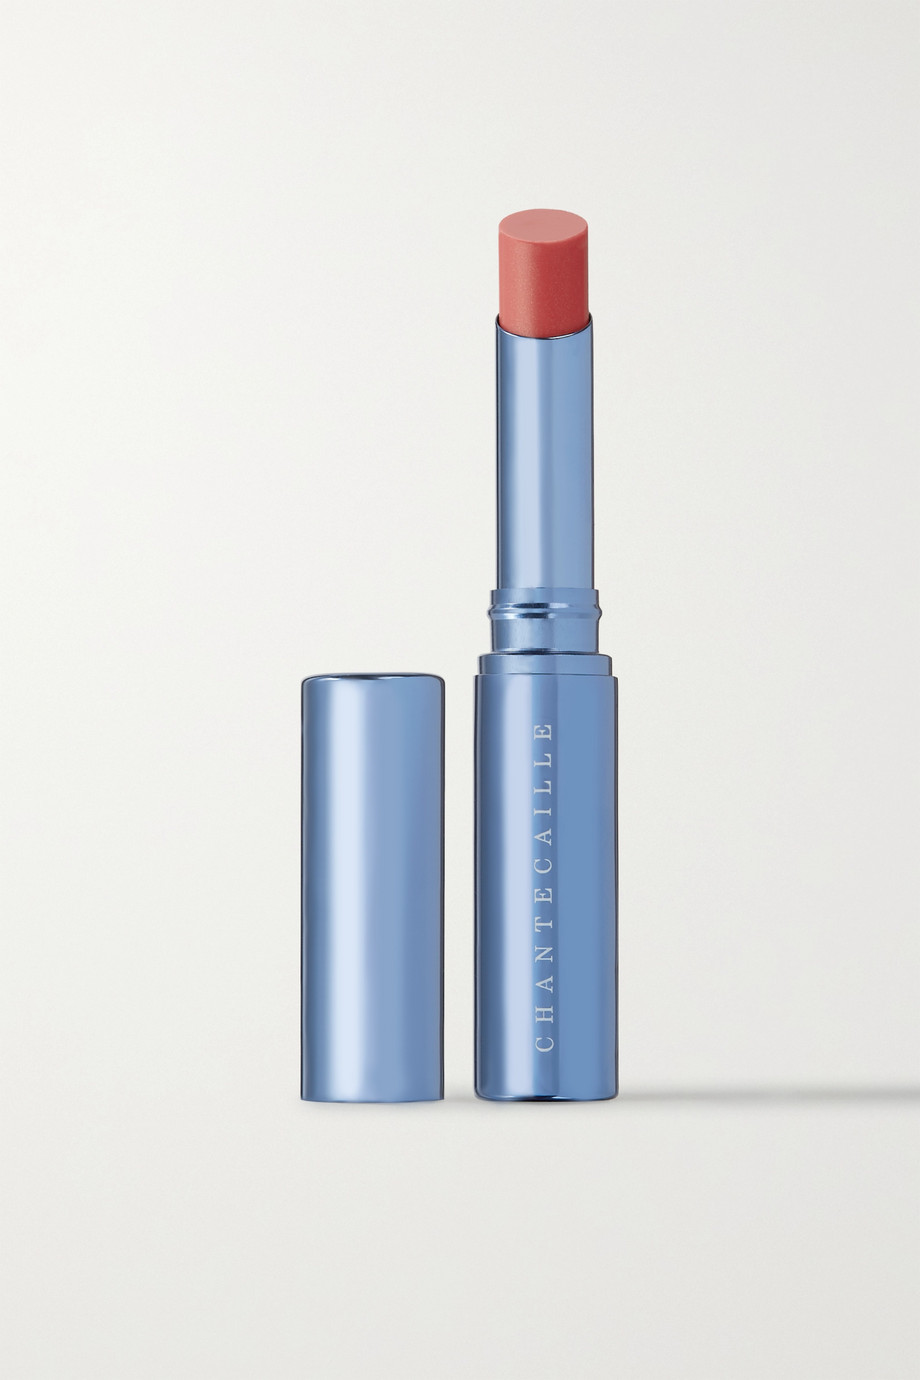 Chantecaille Lip Tint Hydrating Balm - Beach Rose